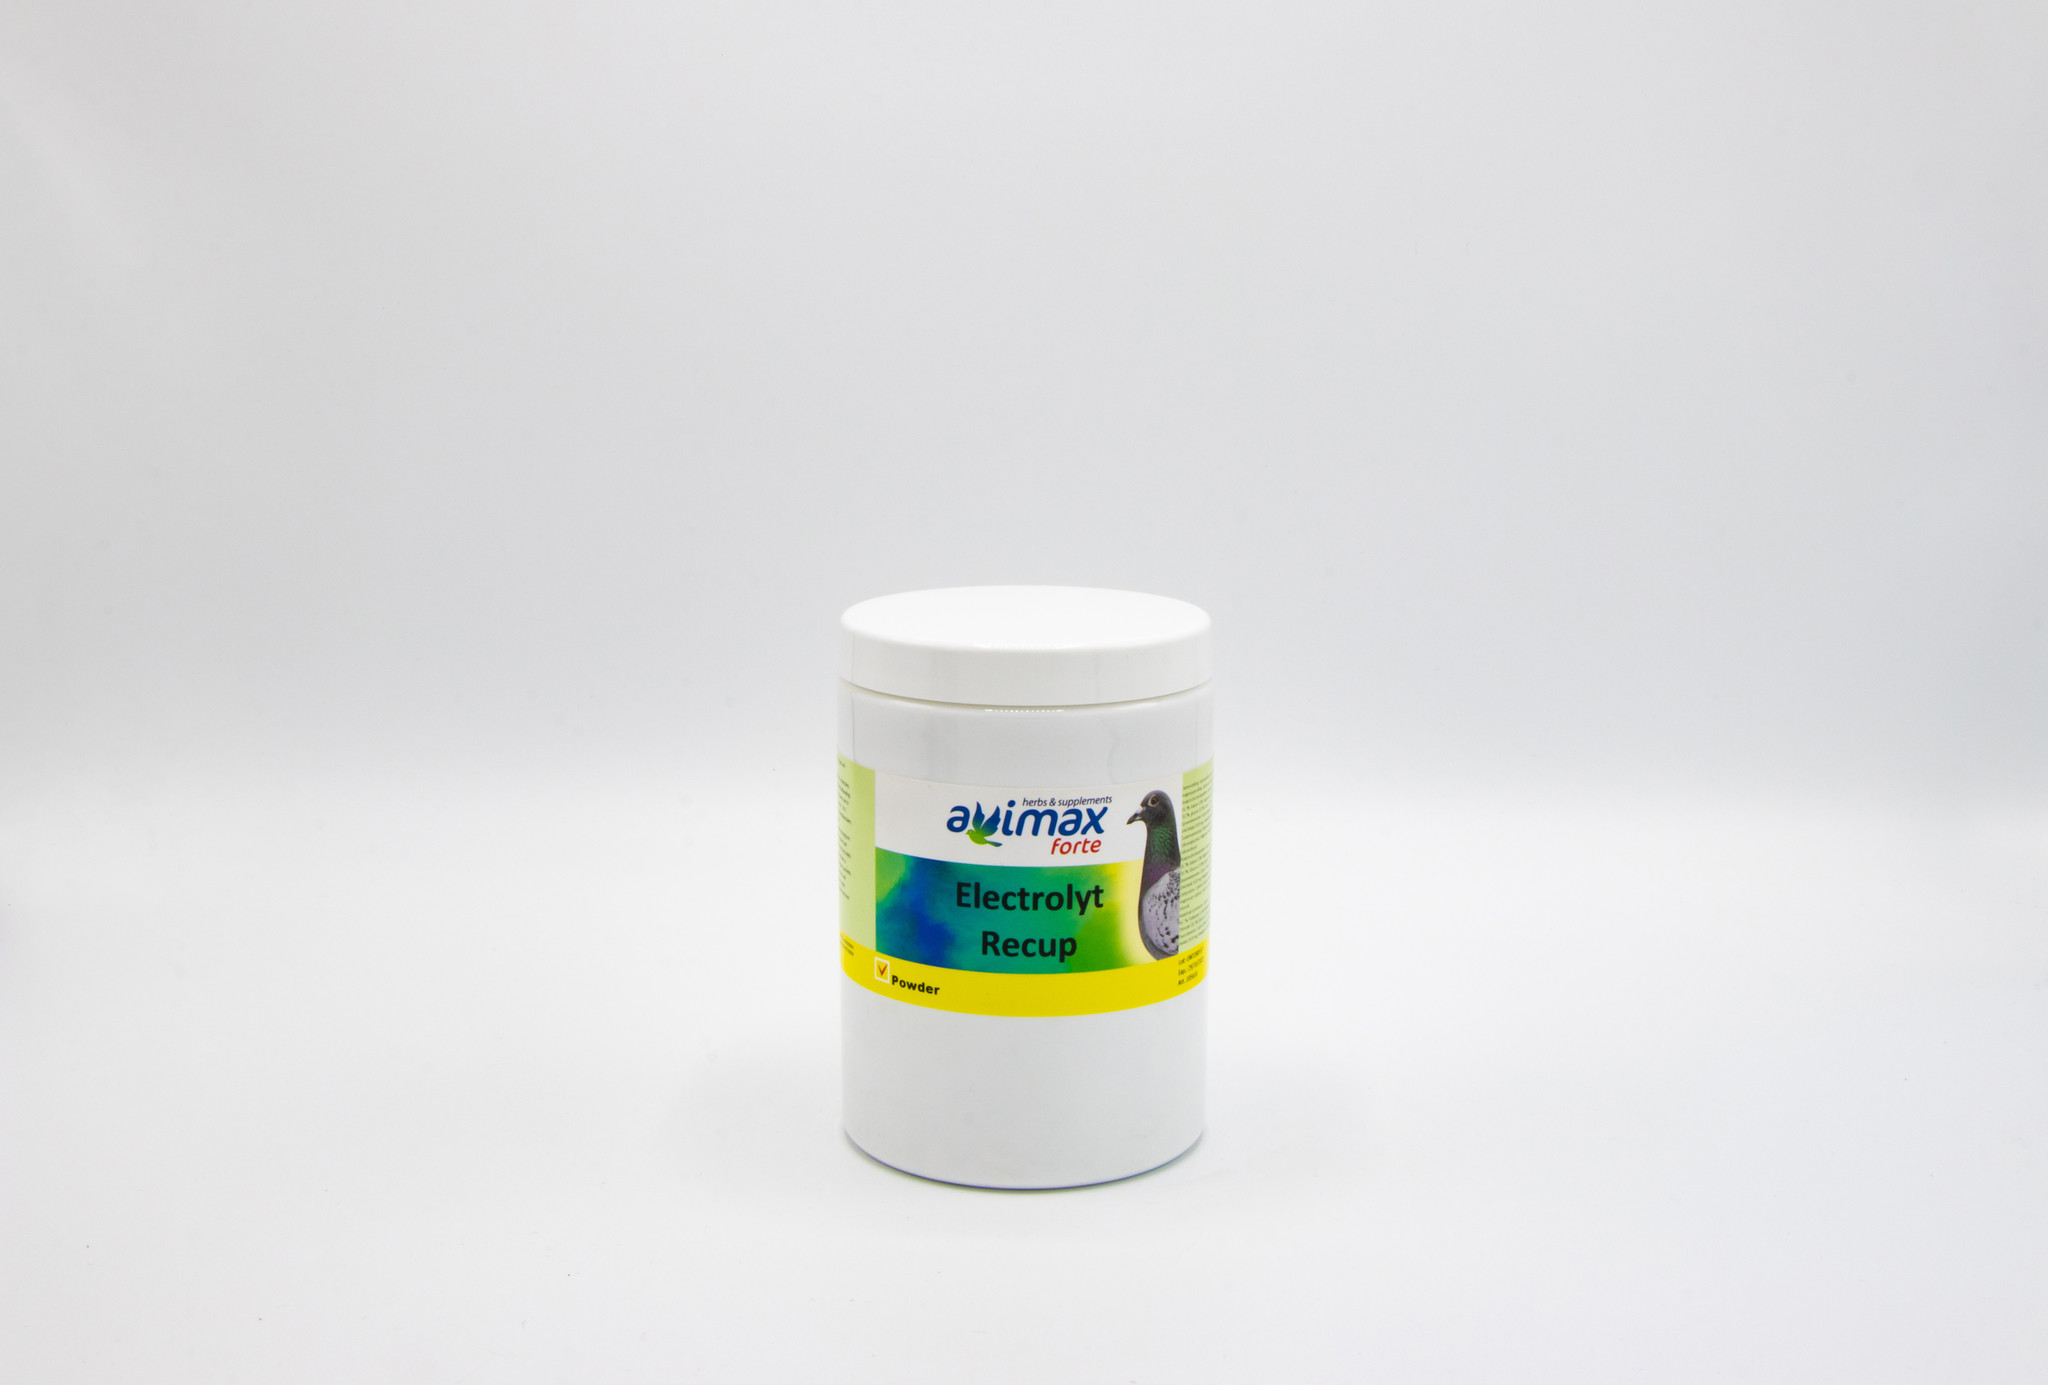 AviMax Forte AviMax Forte Pigeon Care Electrolyt Powder